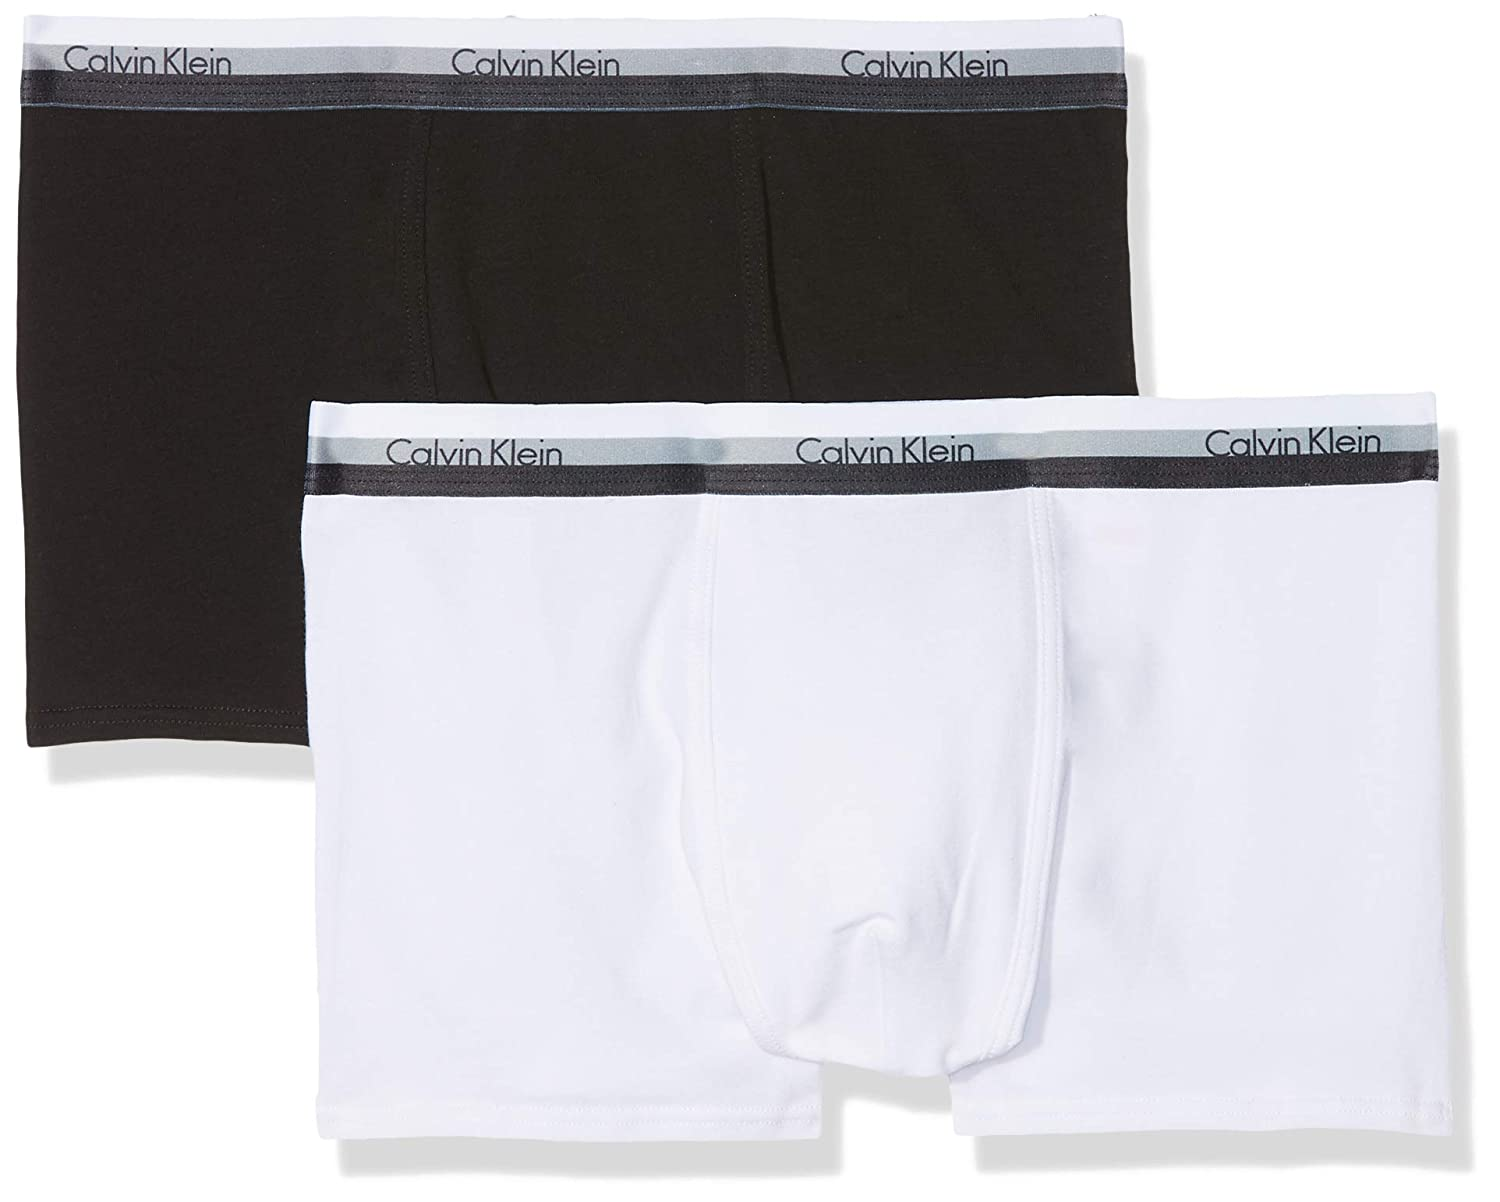 Calvin Klein Boy's Boxer Shorts Pack of 2